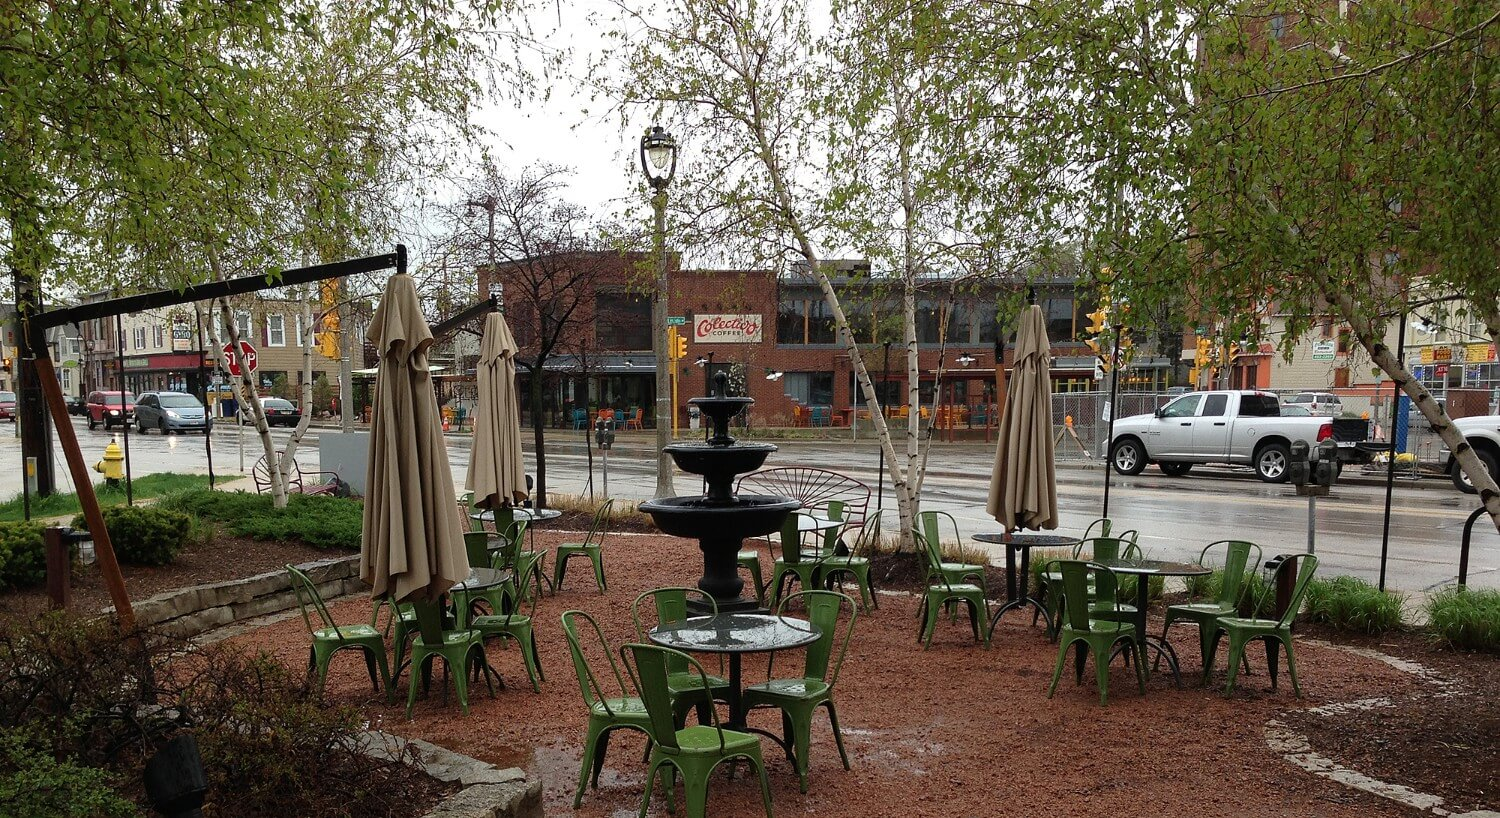 Seating area with green metal tables and chairs on a red gravel patio next to the street.